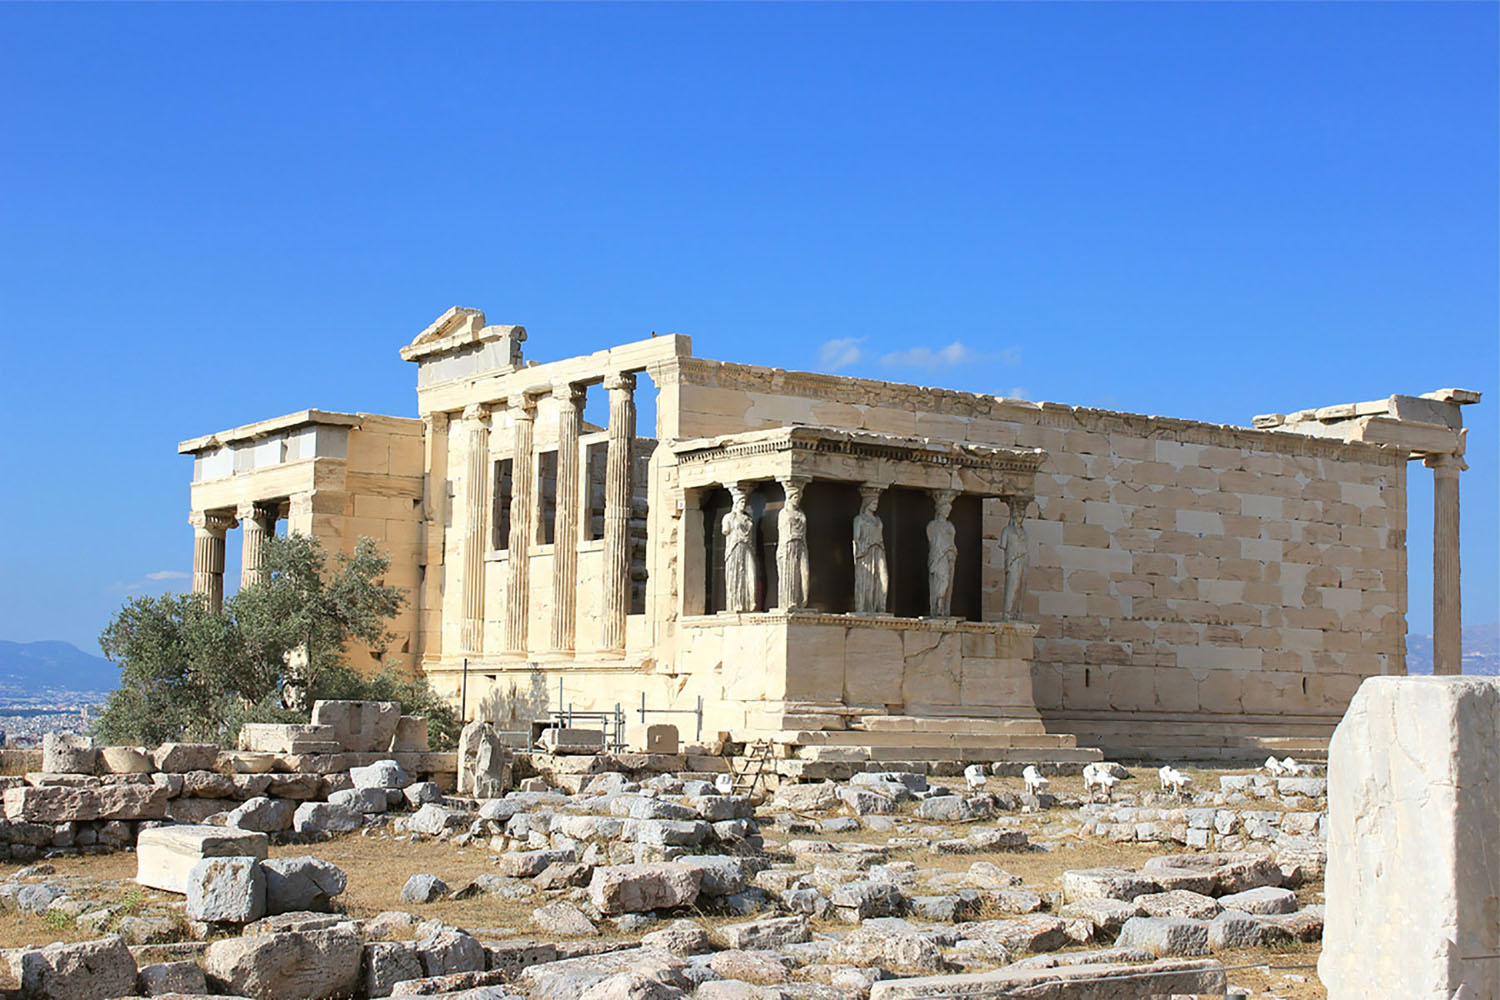 The Acropolis is a must-see in Athens.